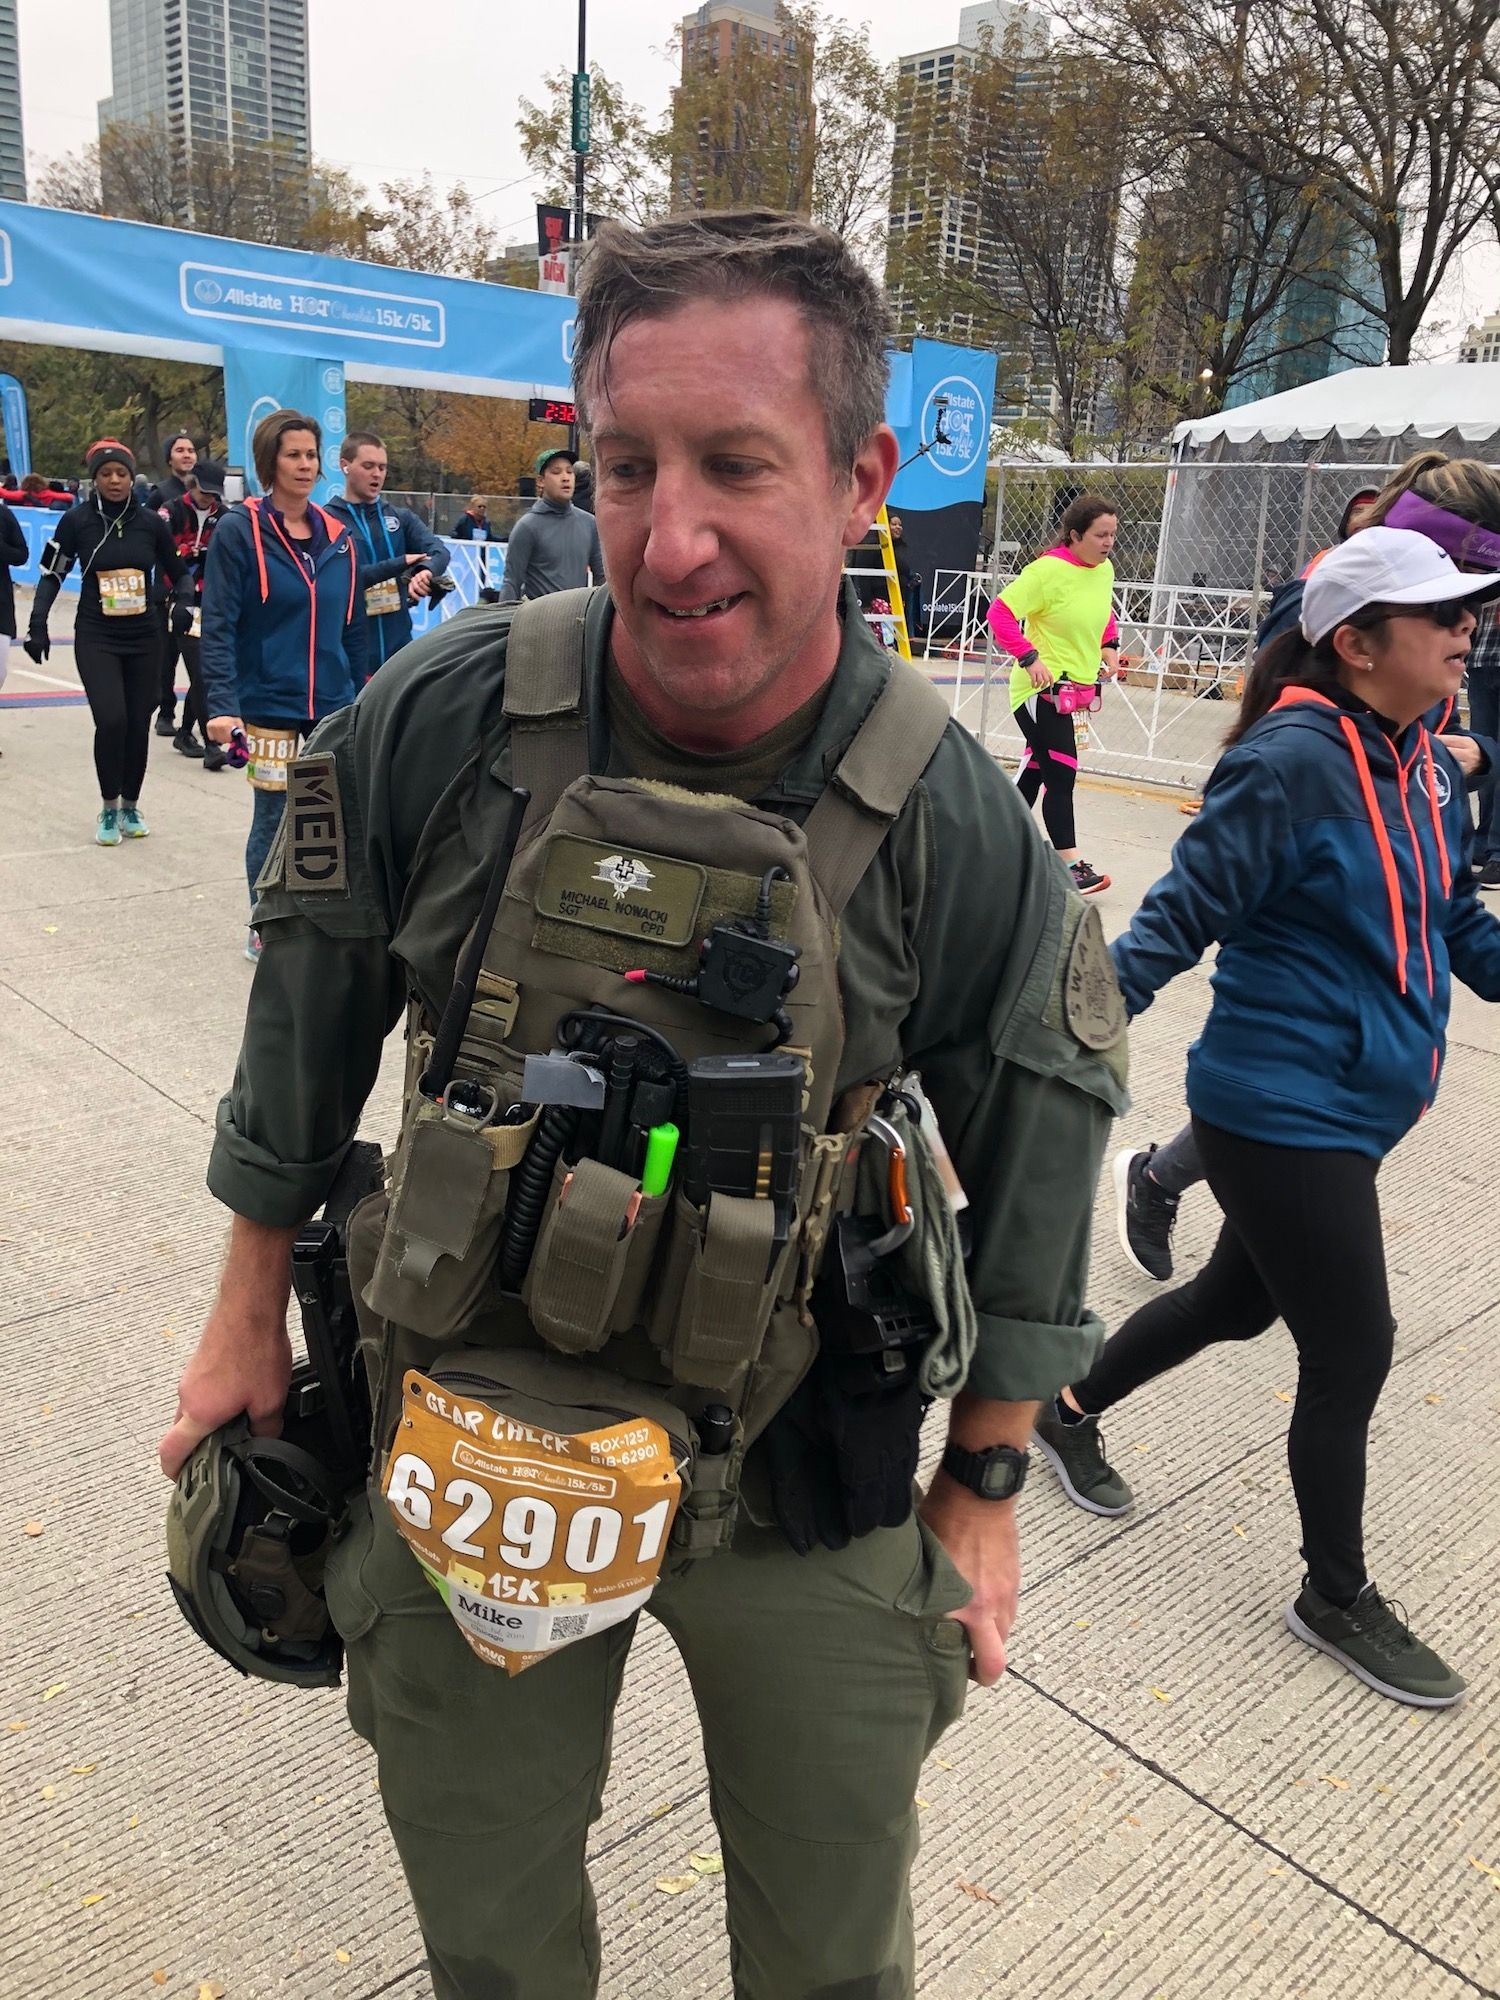 Chicago SWAT Member Races 15K in Gear, Saves Life, Then Proposes to Girlfriend